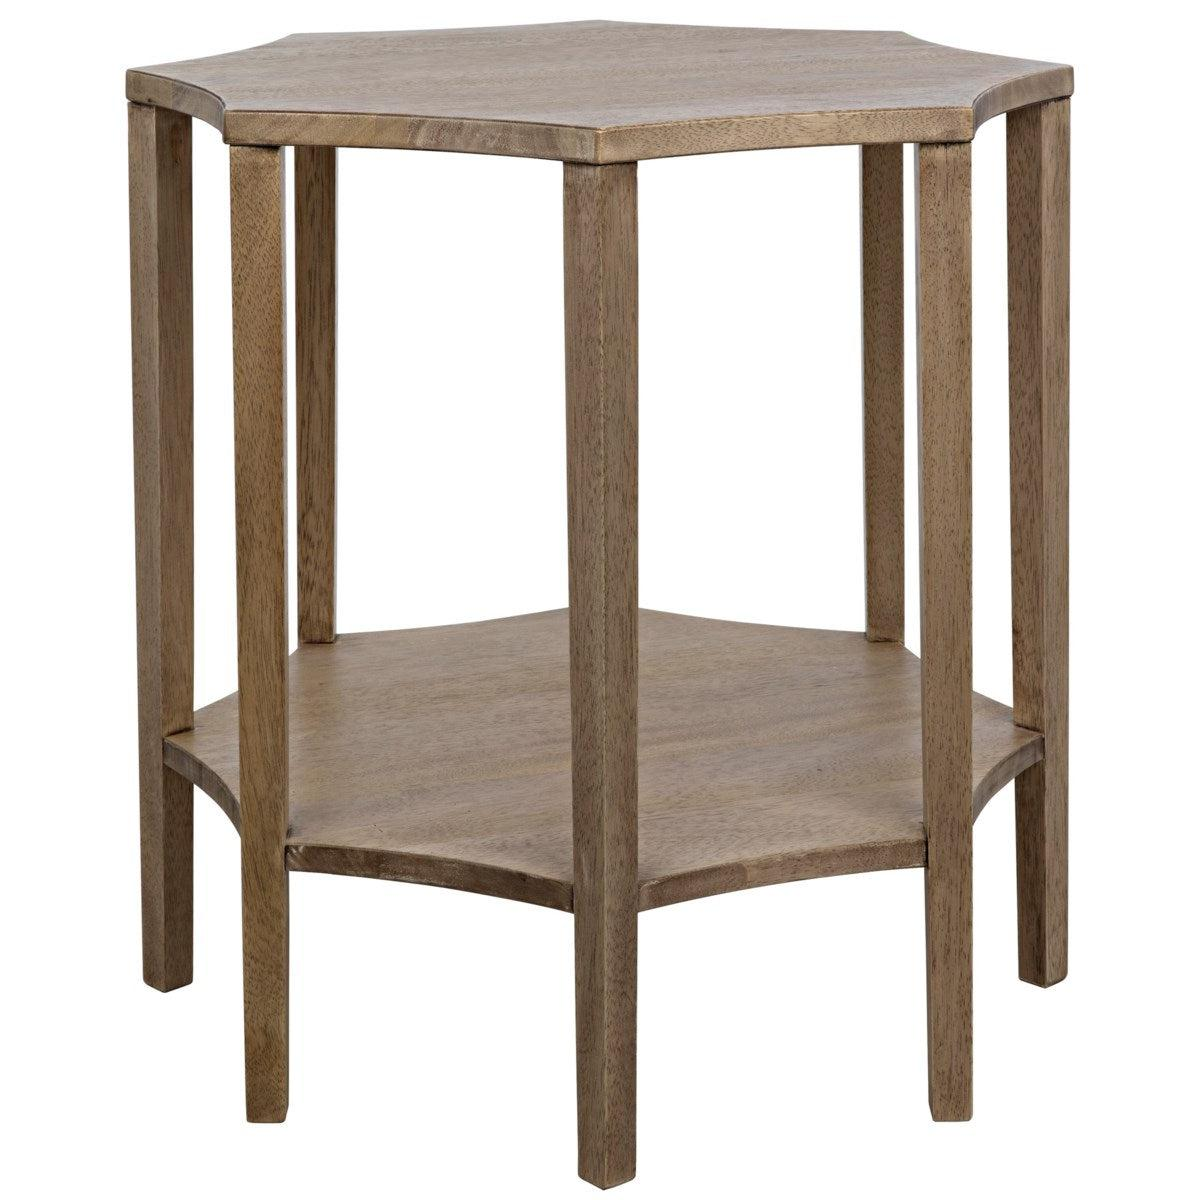 Noir Ariana Side Table, Washed Walnut